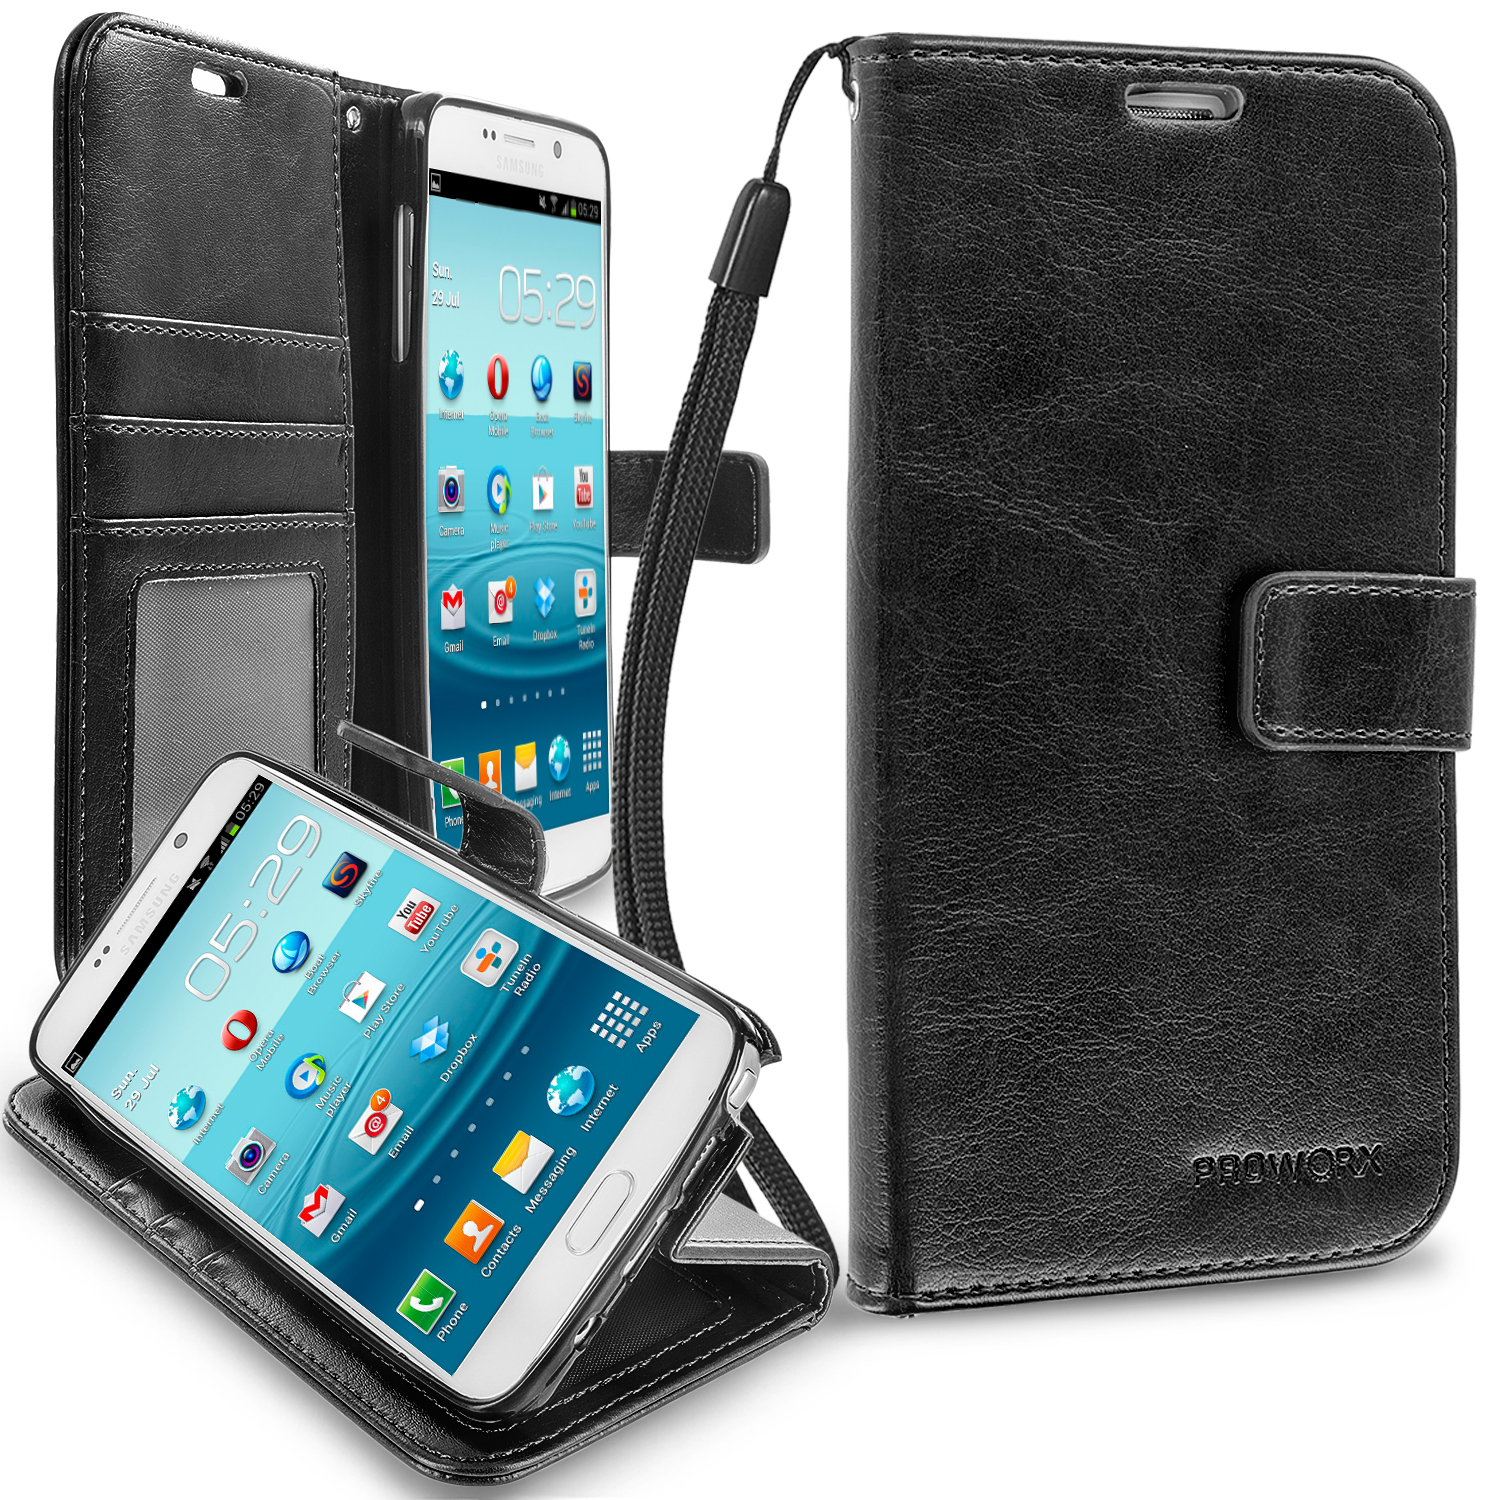 Samsung Galaxy Note 5 Black ProWorx Wallet Case Luxury PU Leather Case Cover With Card Slots & Stand